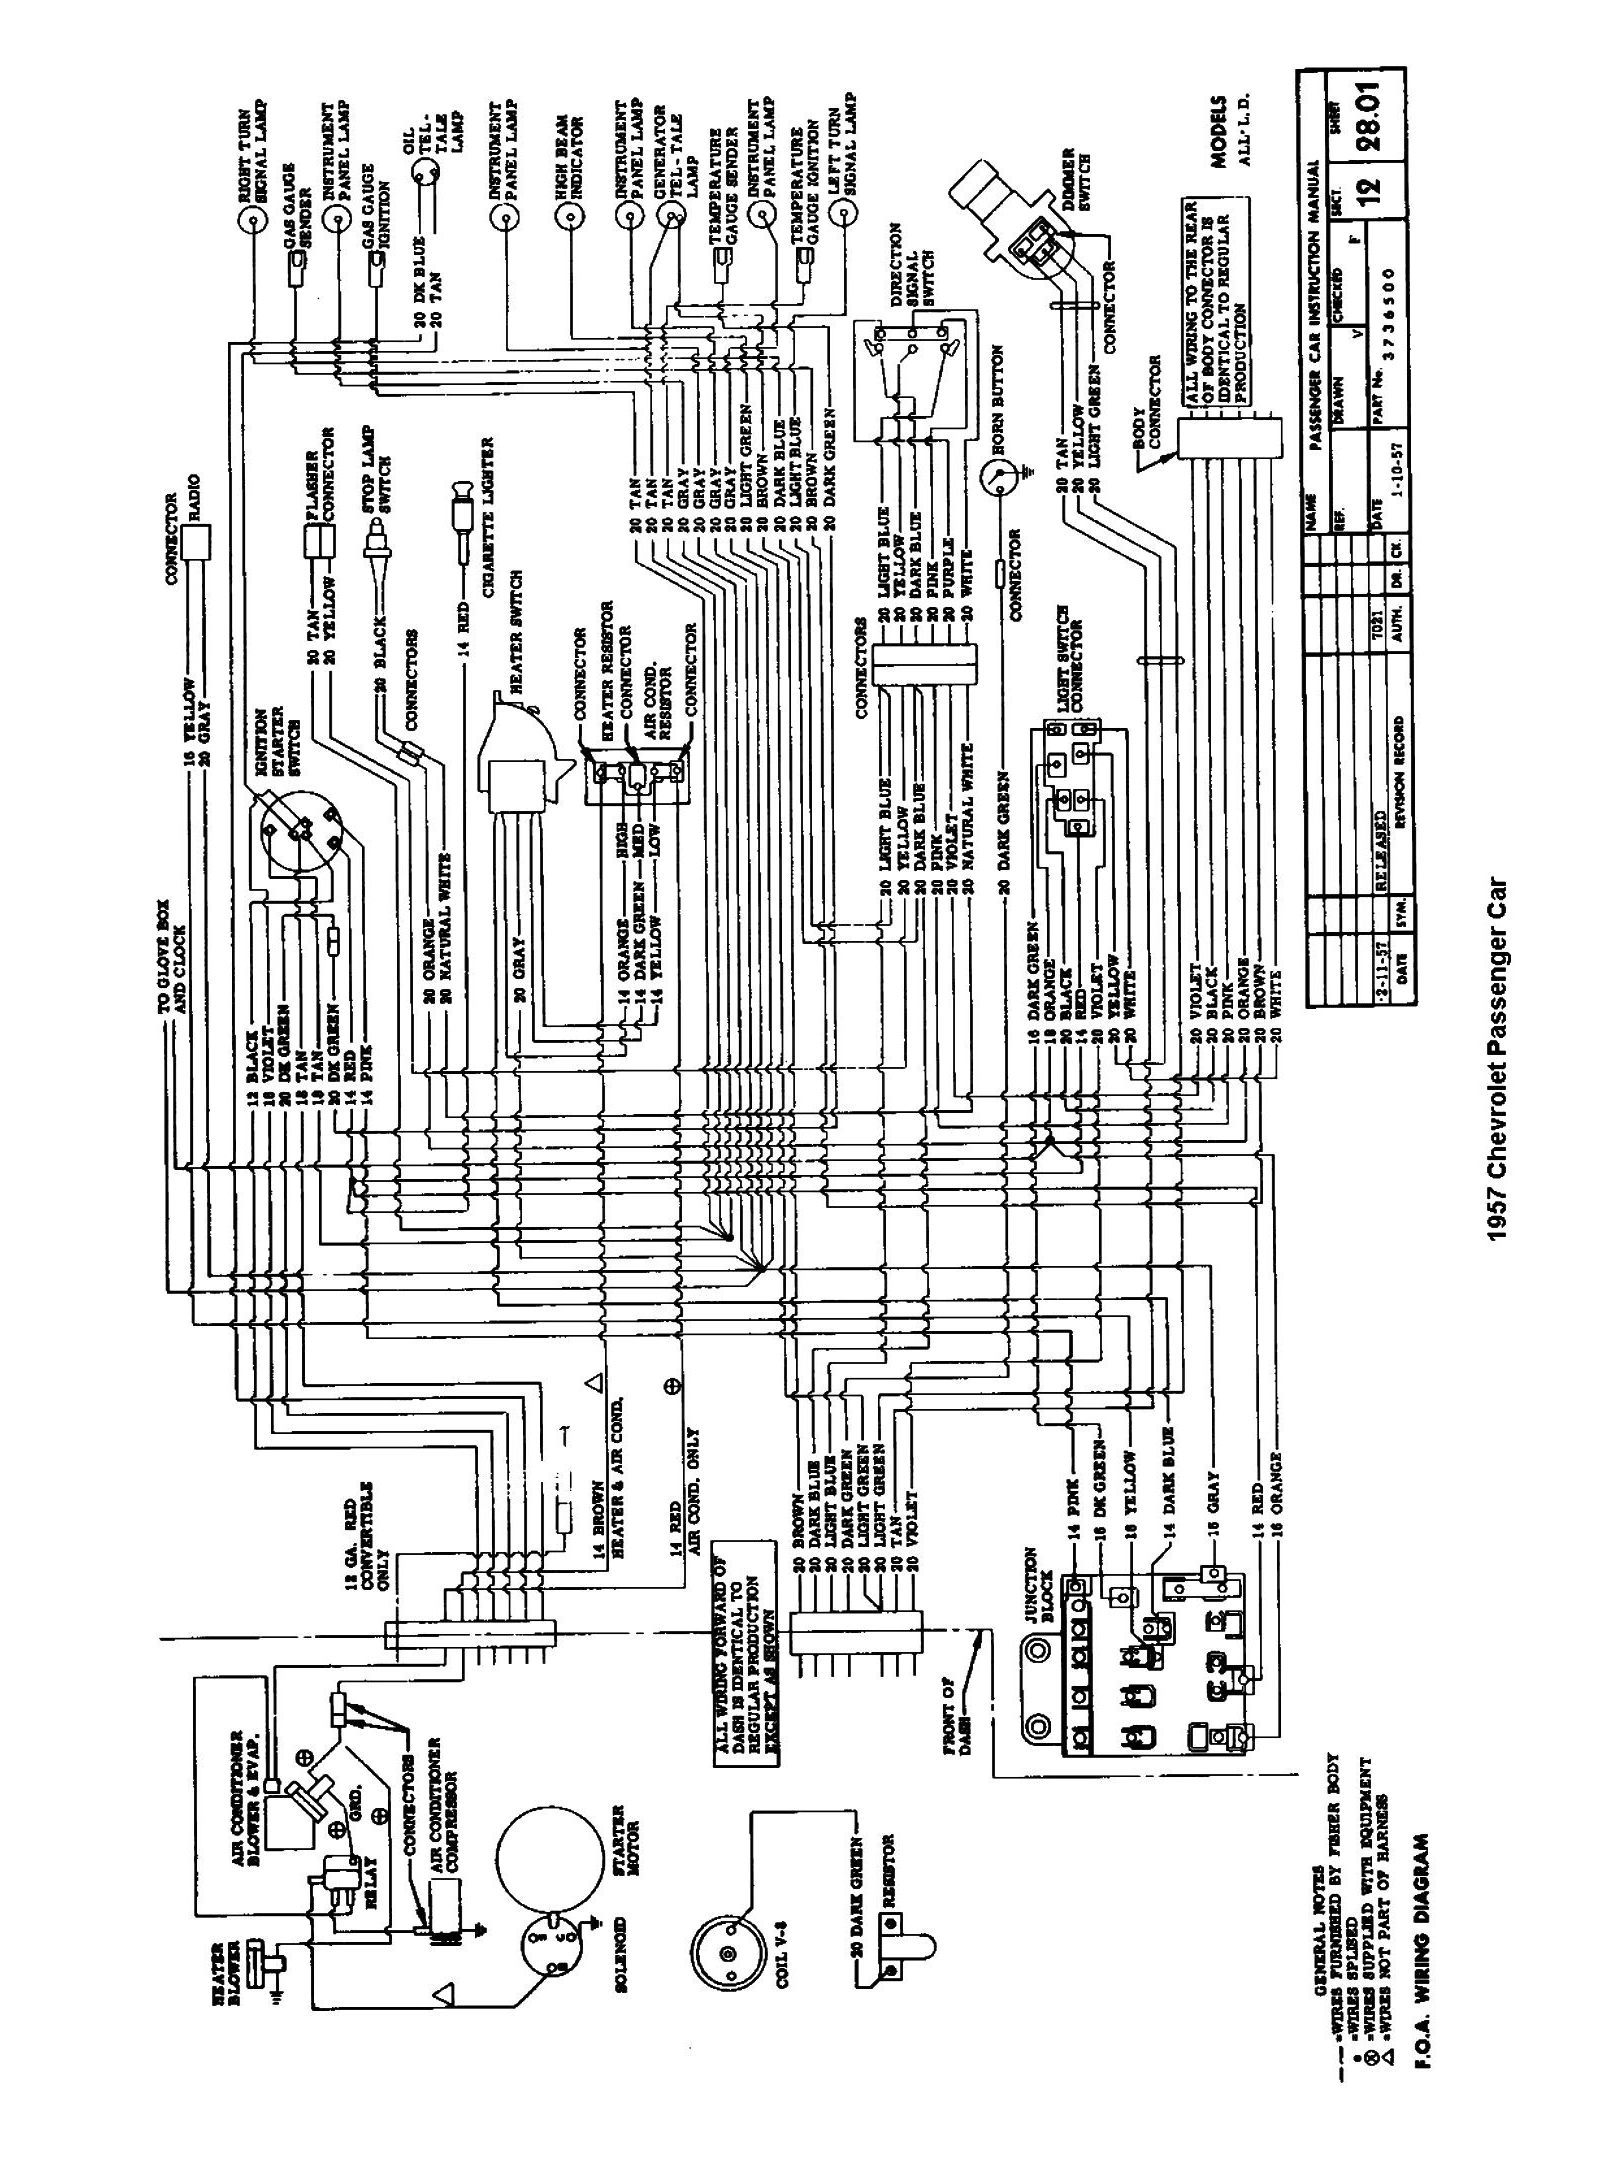 Chevy Wiring Diagrams Lighting Circuit Diagram 2 Way 1957 Passenger Car